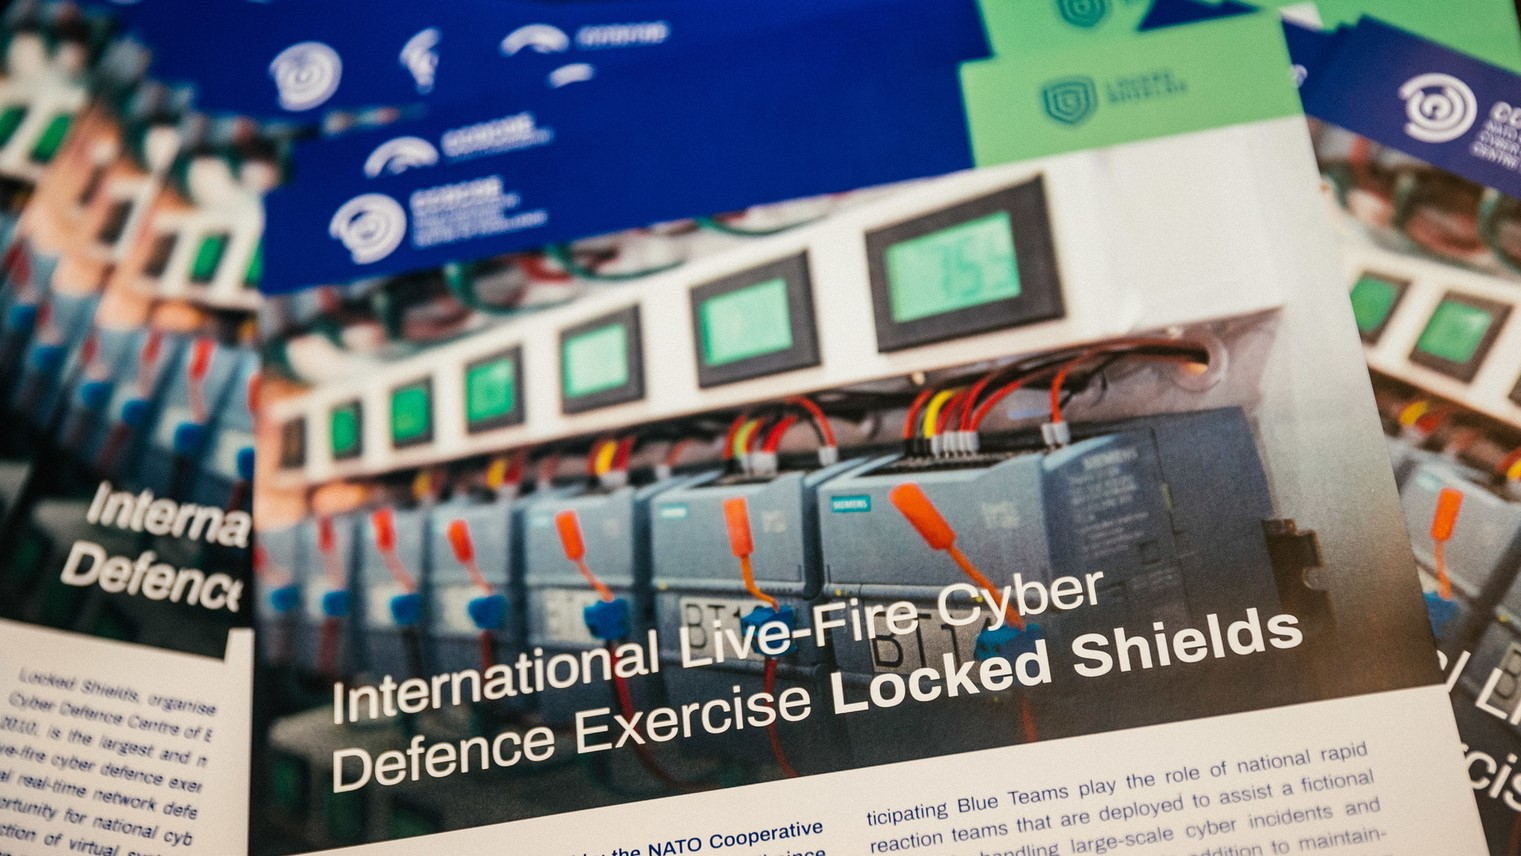 EDA participates in 'Locked Shields' cyber defence exercise